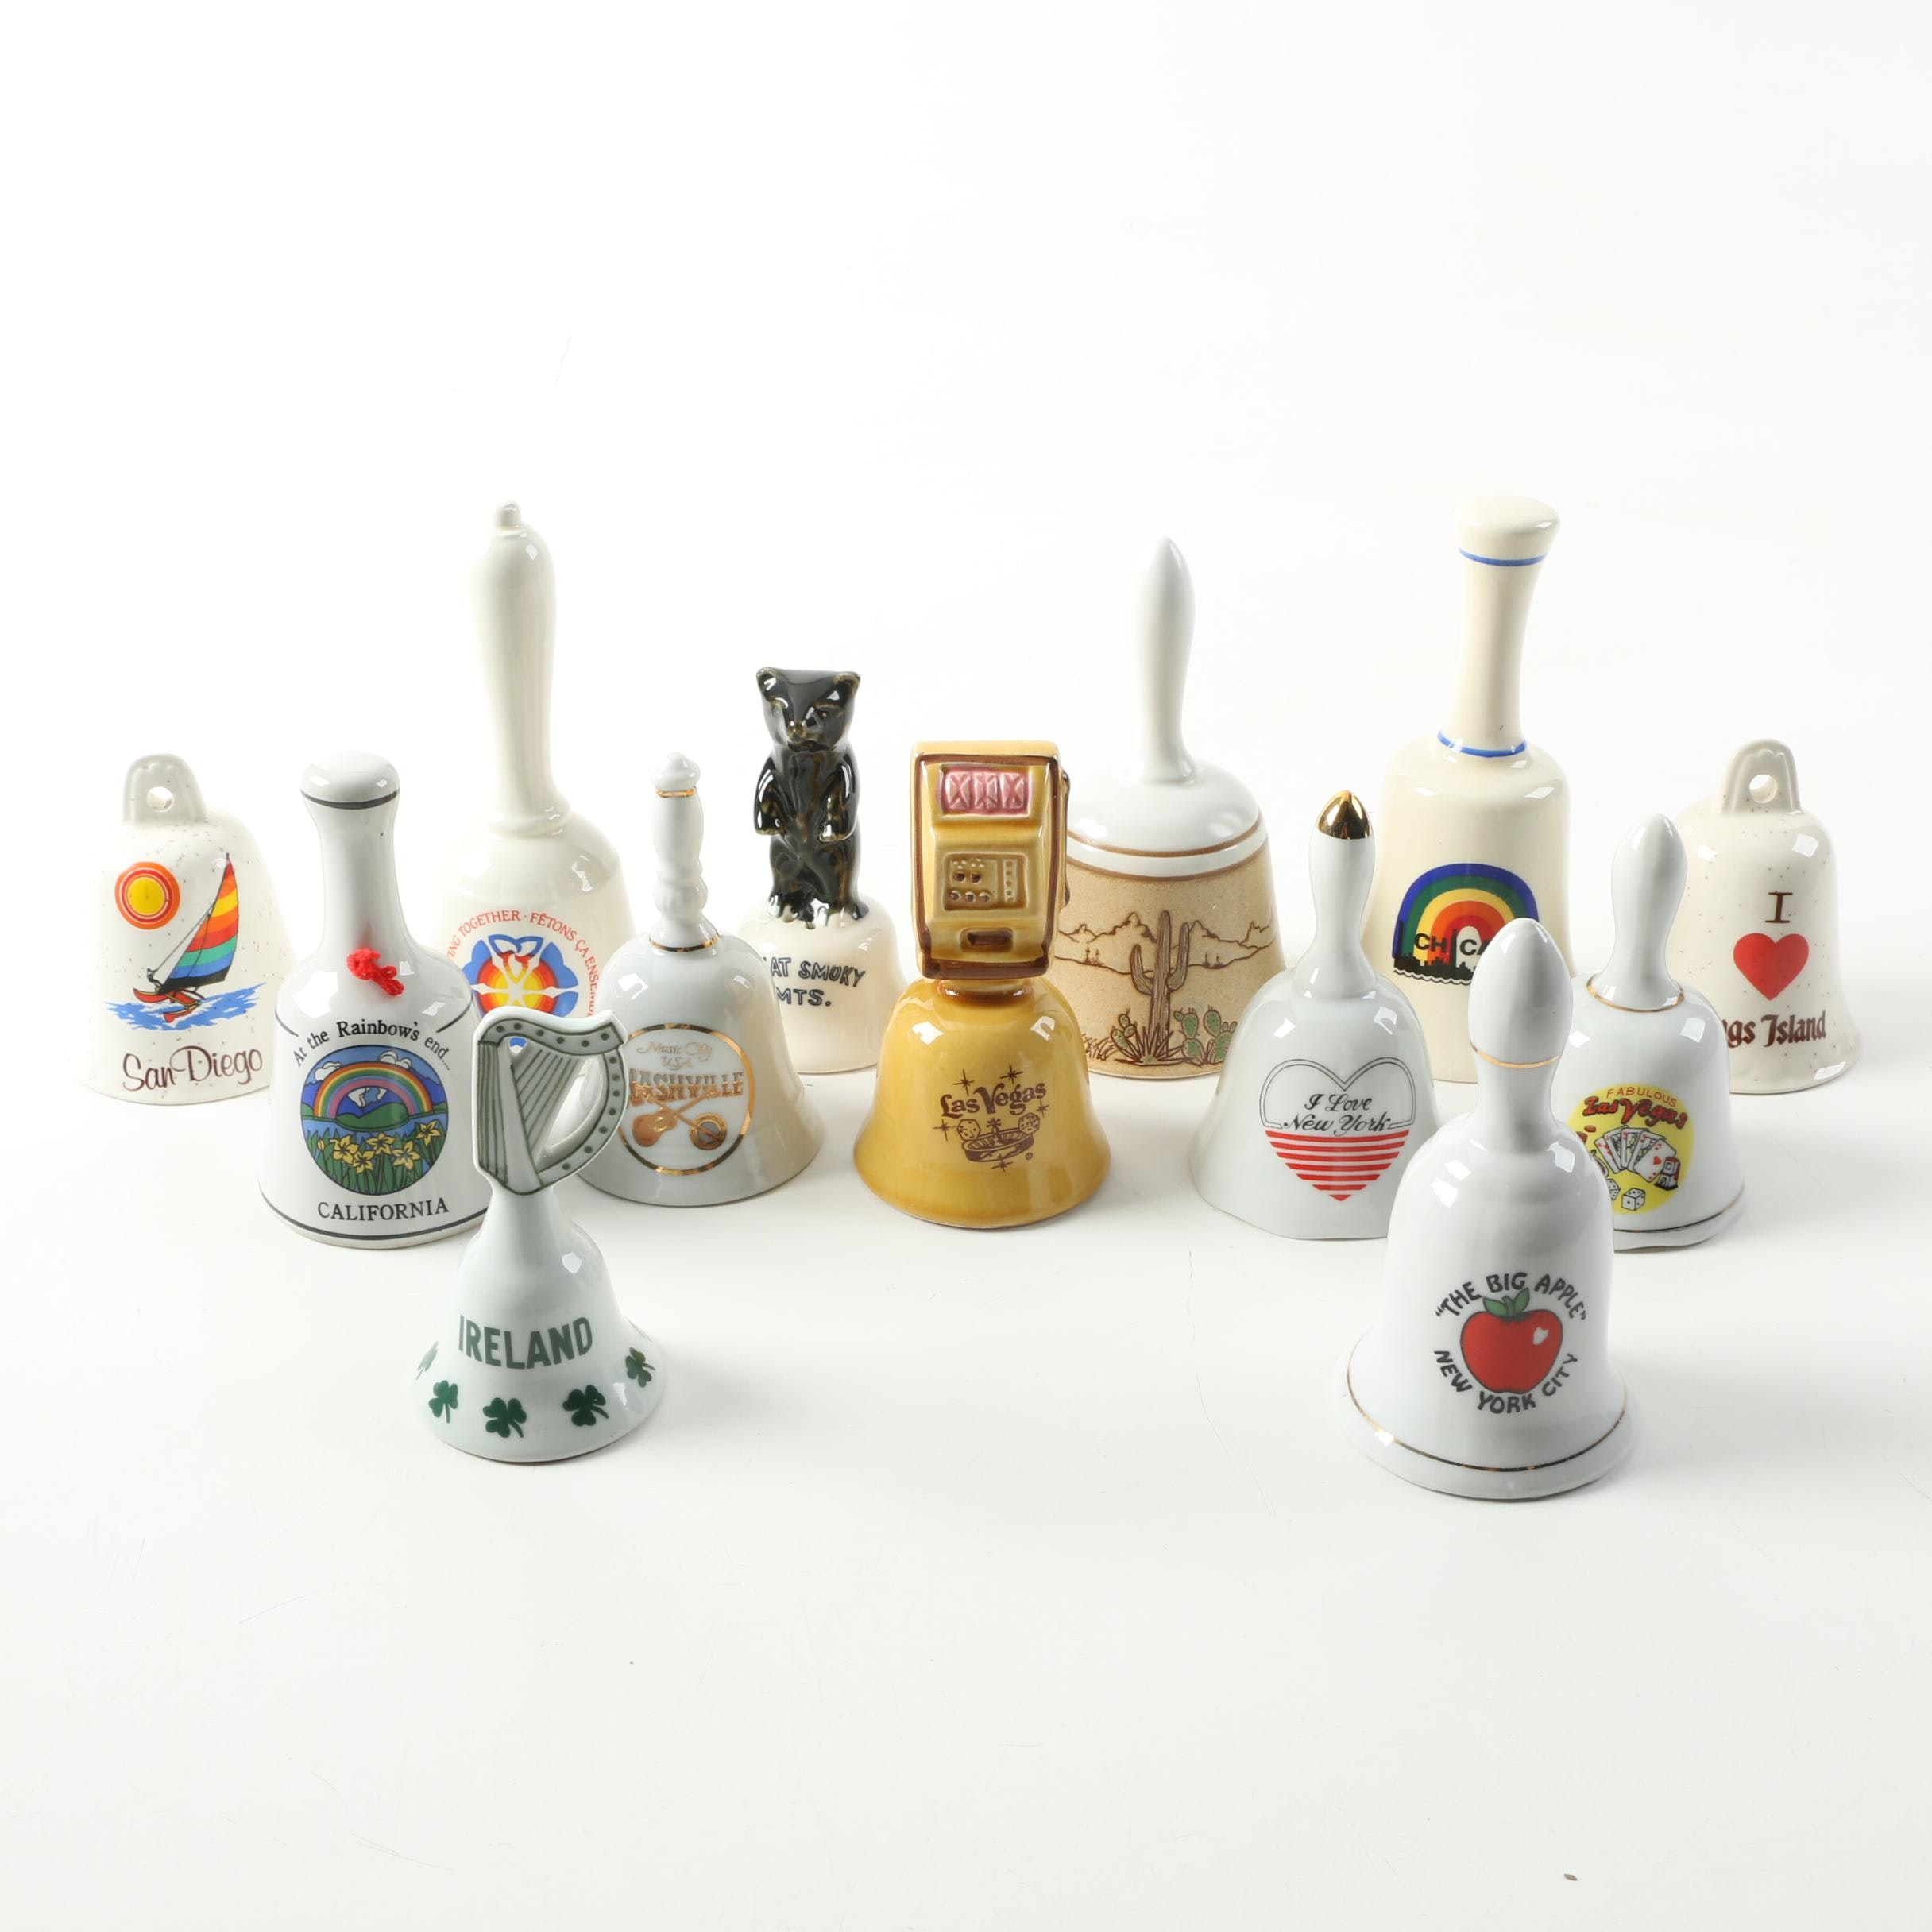 Souvenir Bells, Including Ireland, California, NYC, Chicago and Others